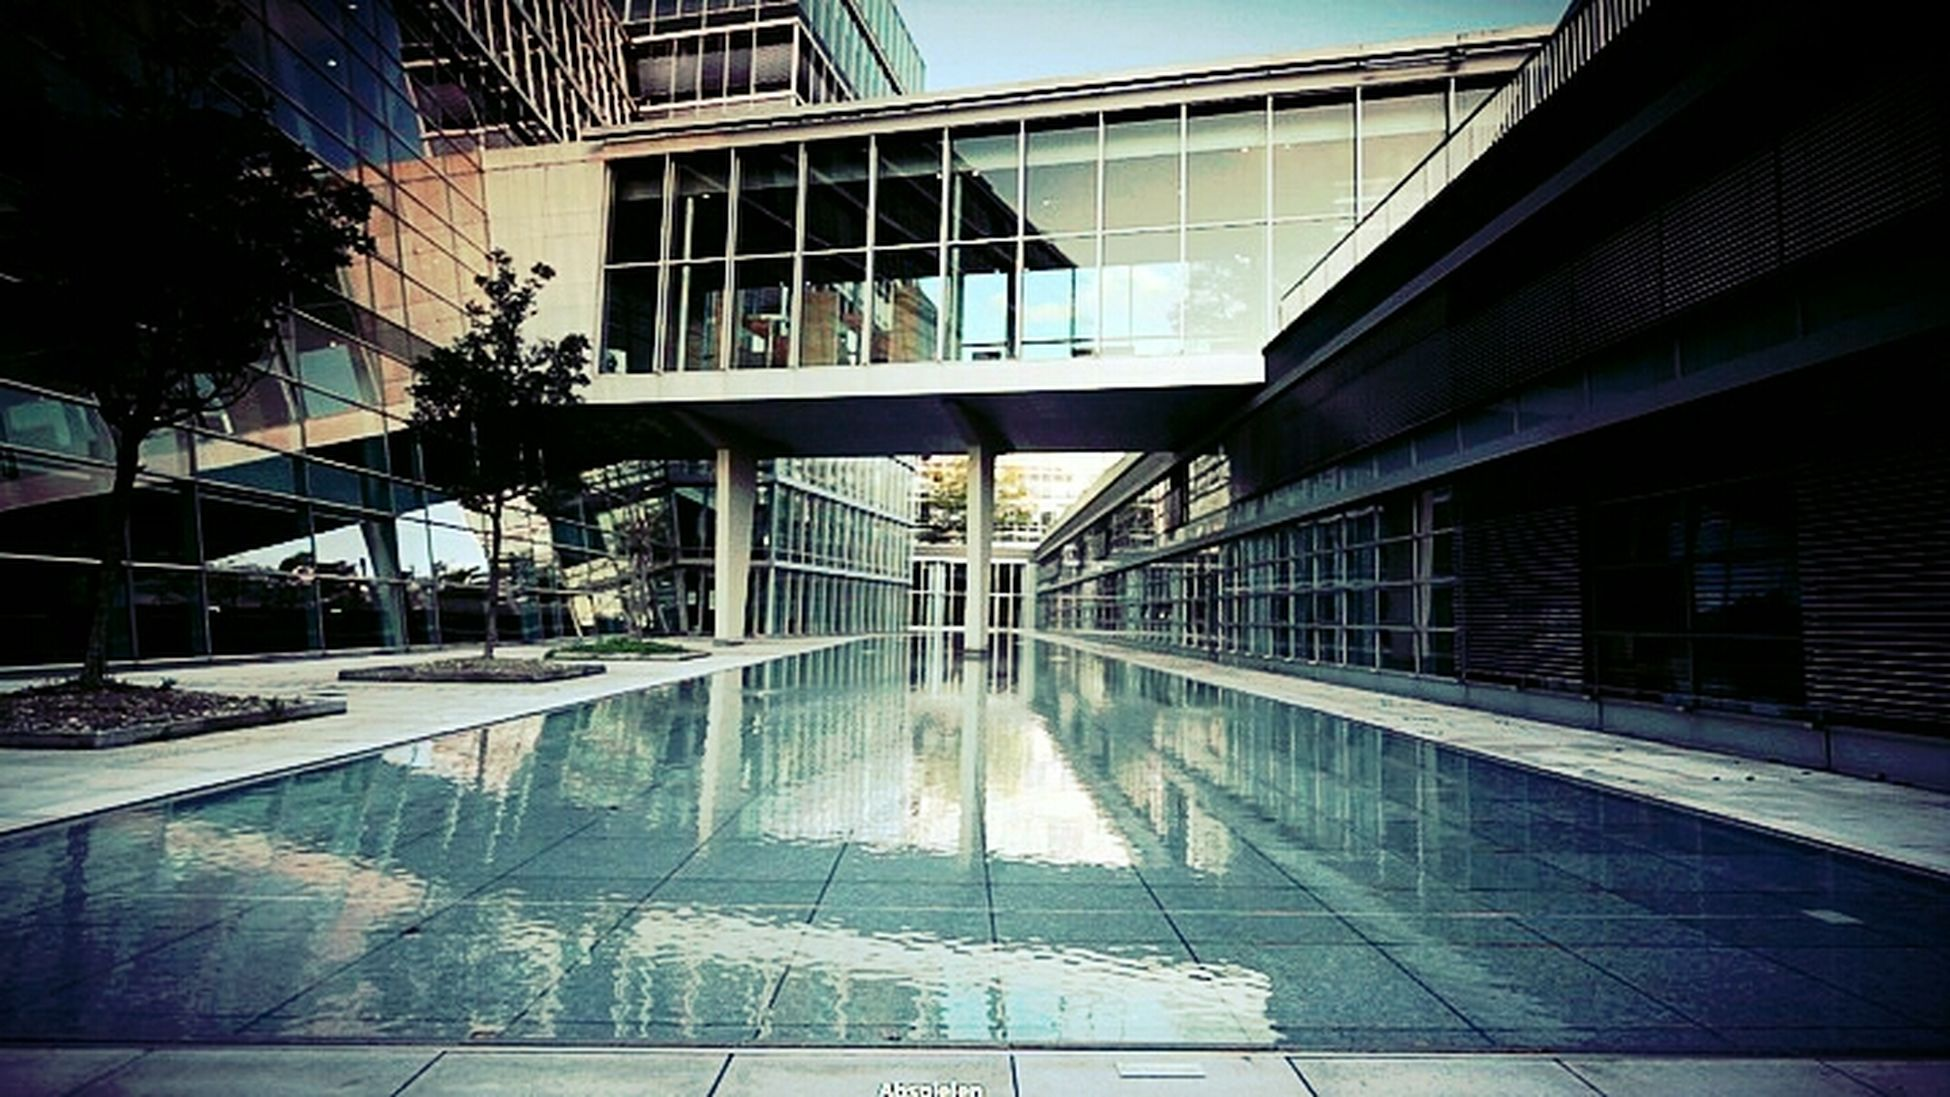 building exterior, architecture, built structure, reflection, building, city, glass - material, modern, window, office building, residential building, low angle view, water, residential structure, day, sunlight, outdoors, railing, no people, glass